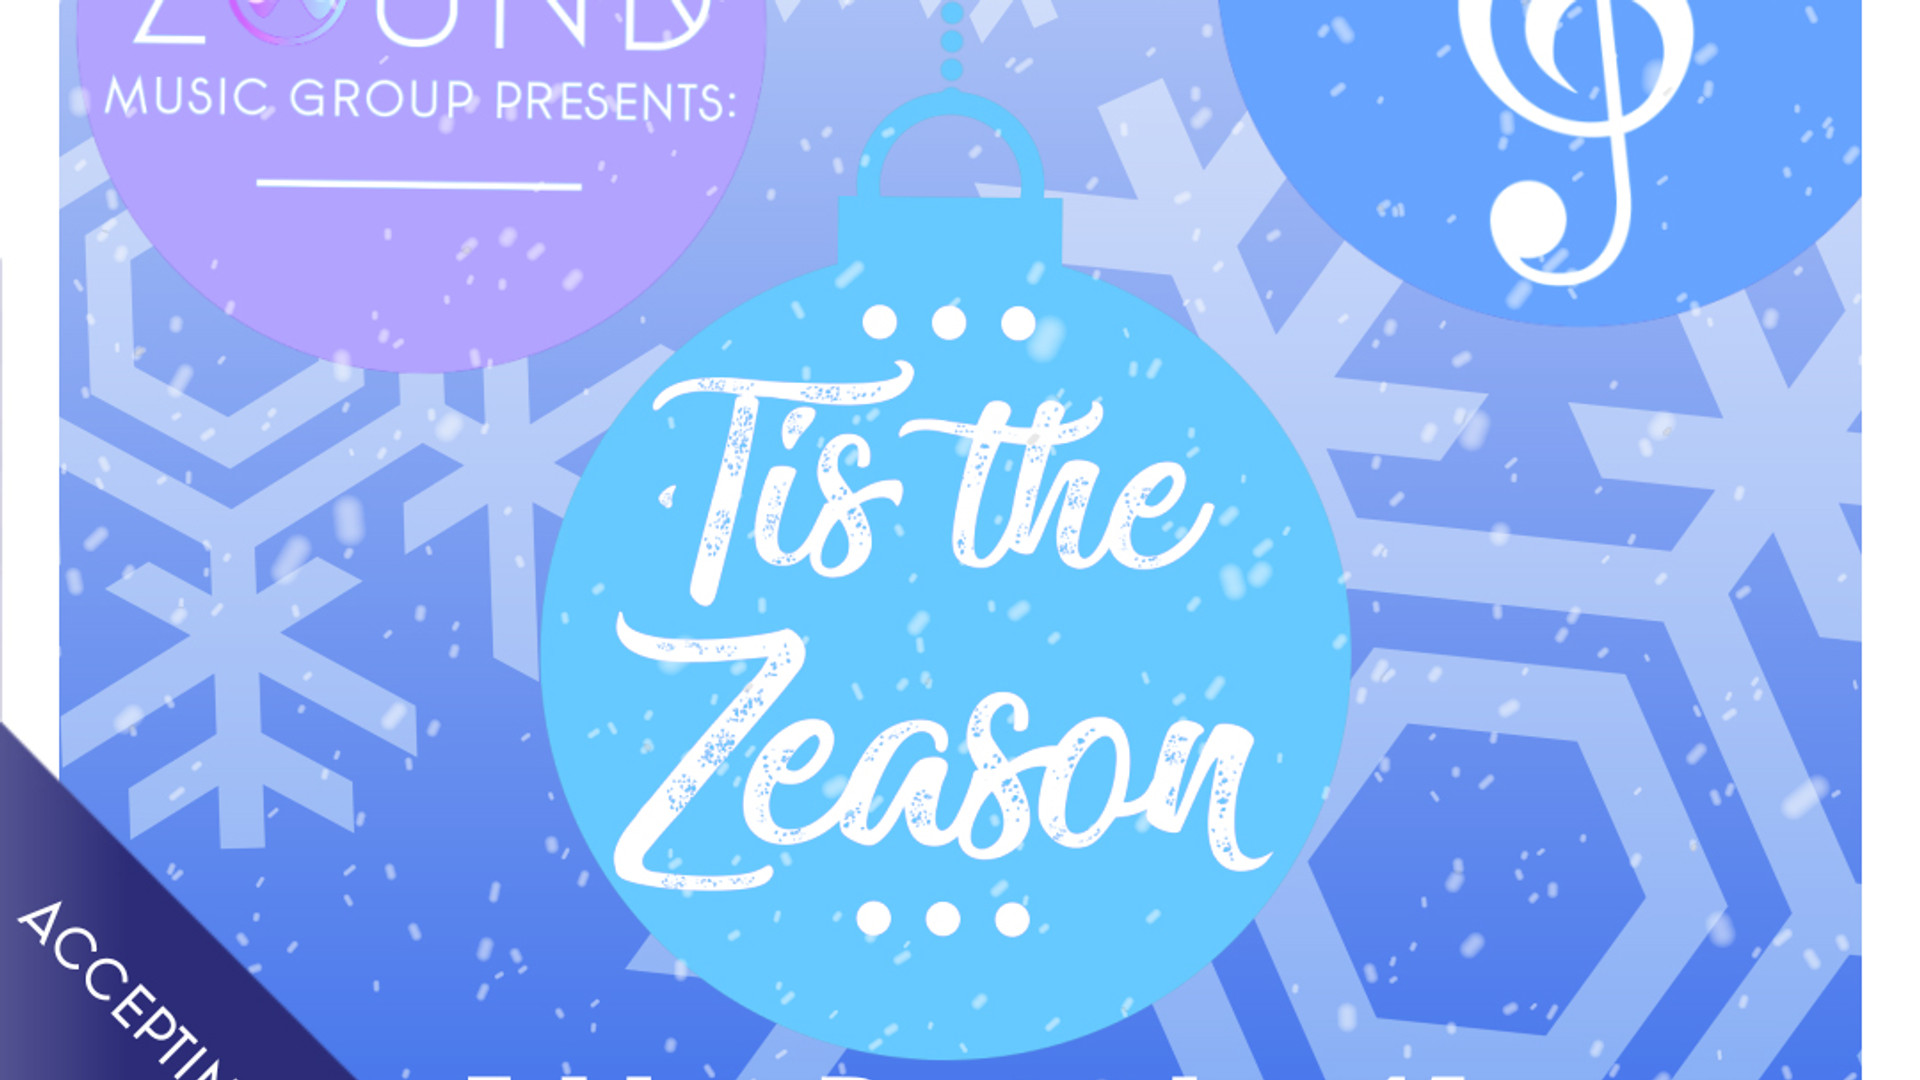 ZOUND Music Group presents: 'Tis the Zeason Motion Flyer